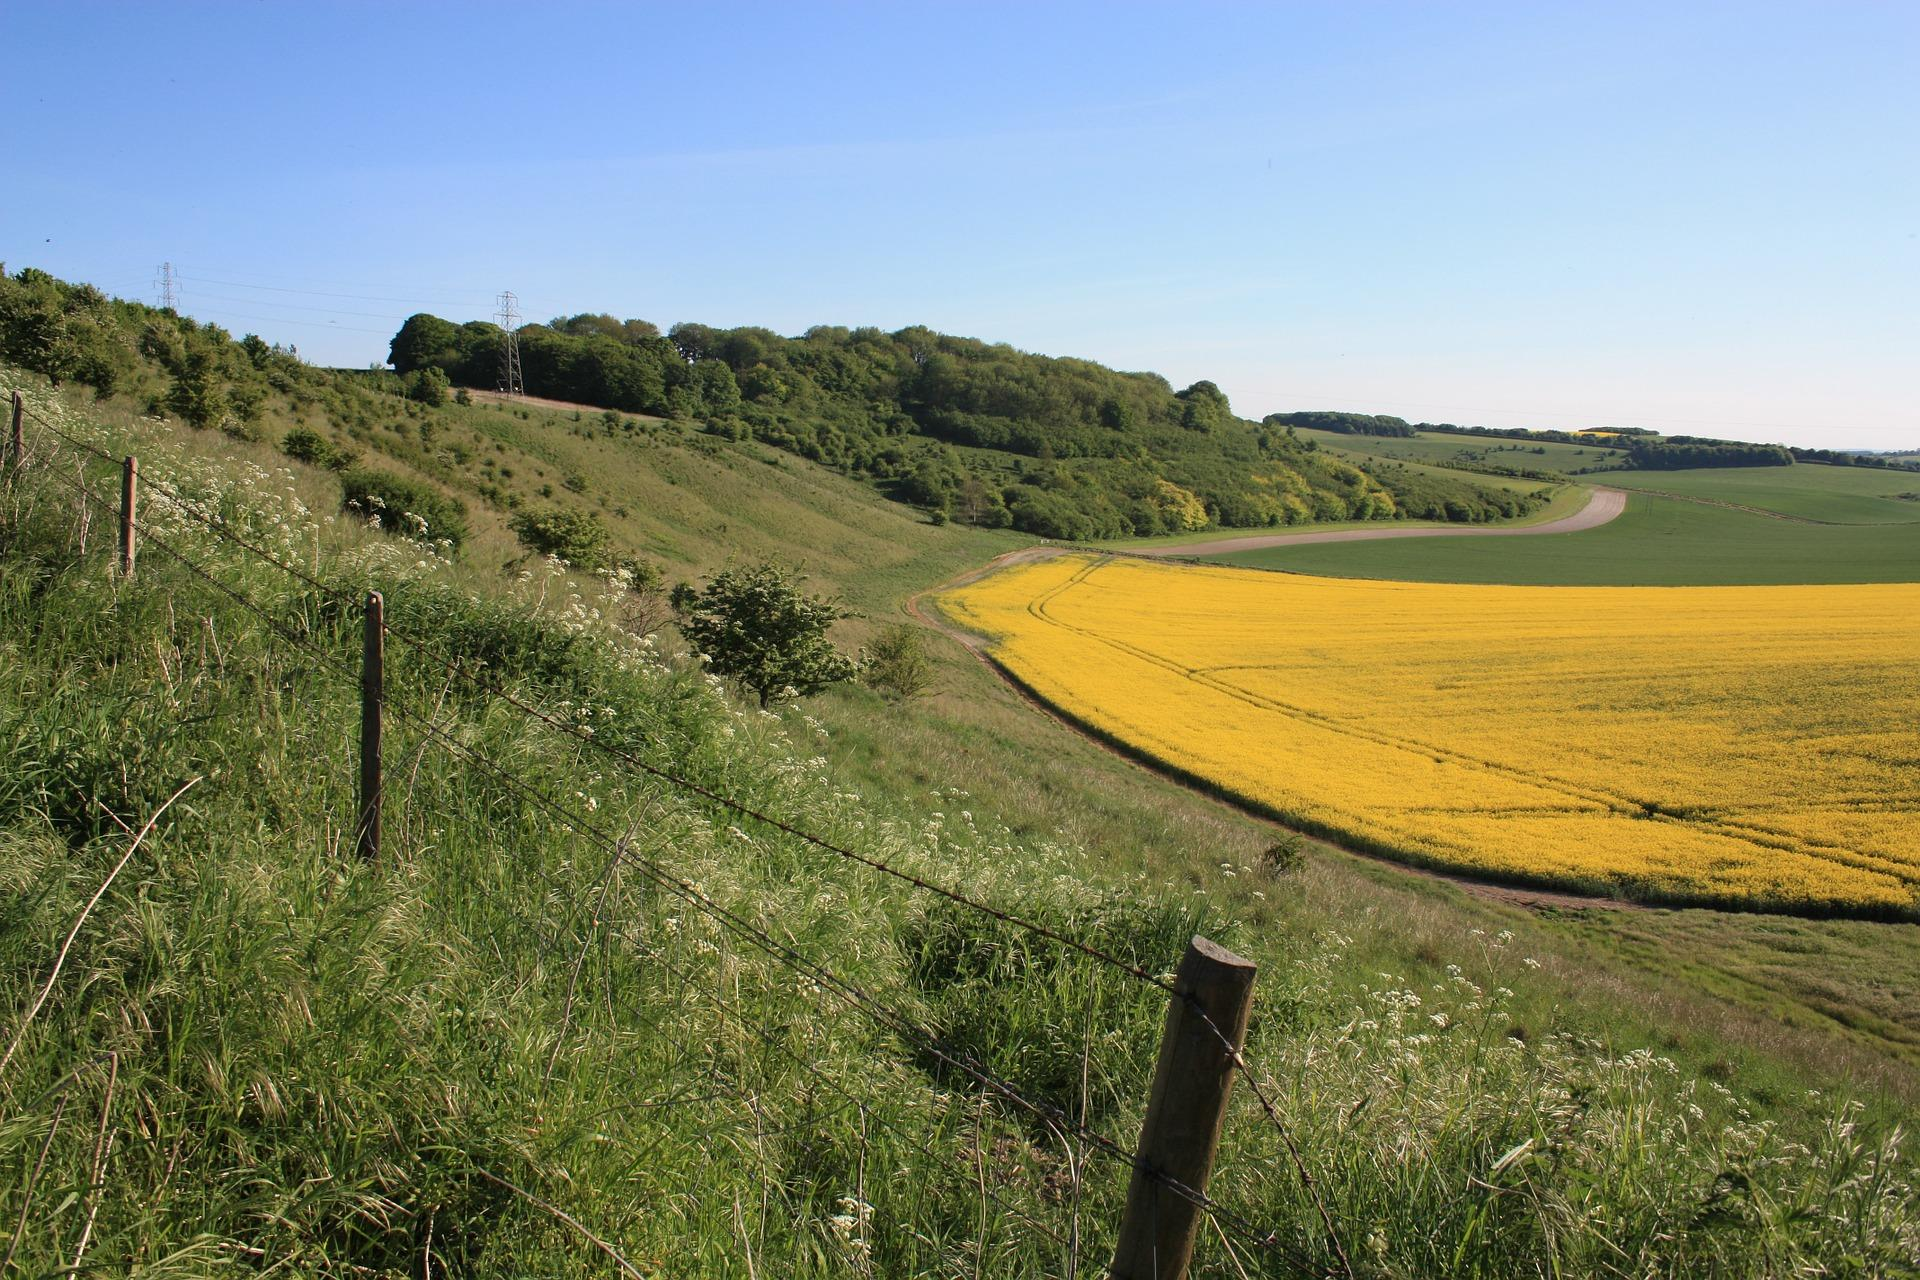 Wiltshire countryside image, large field